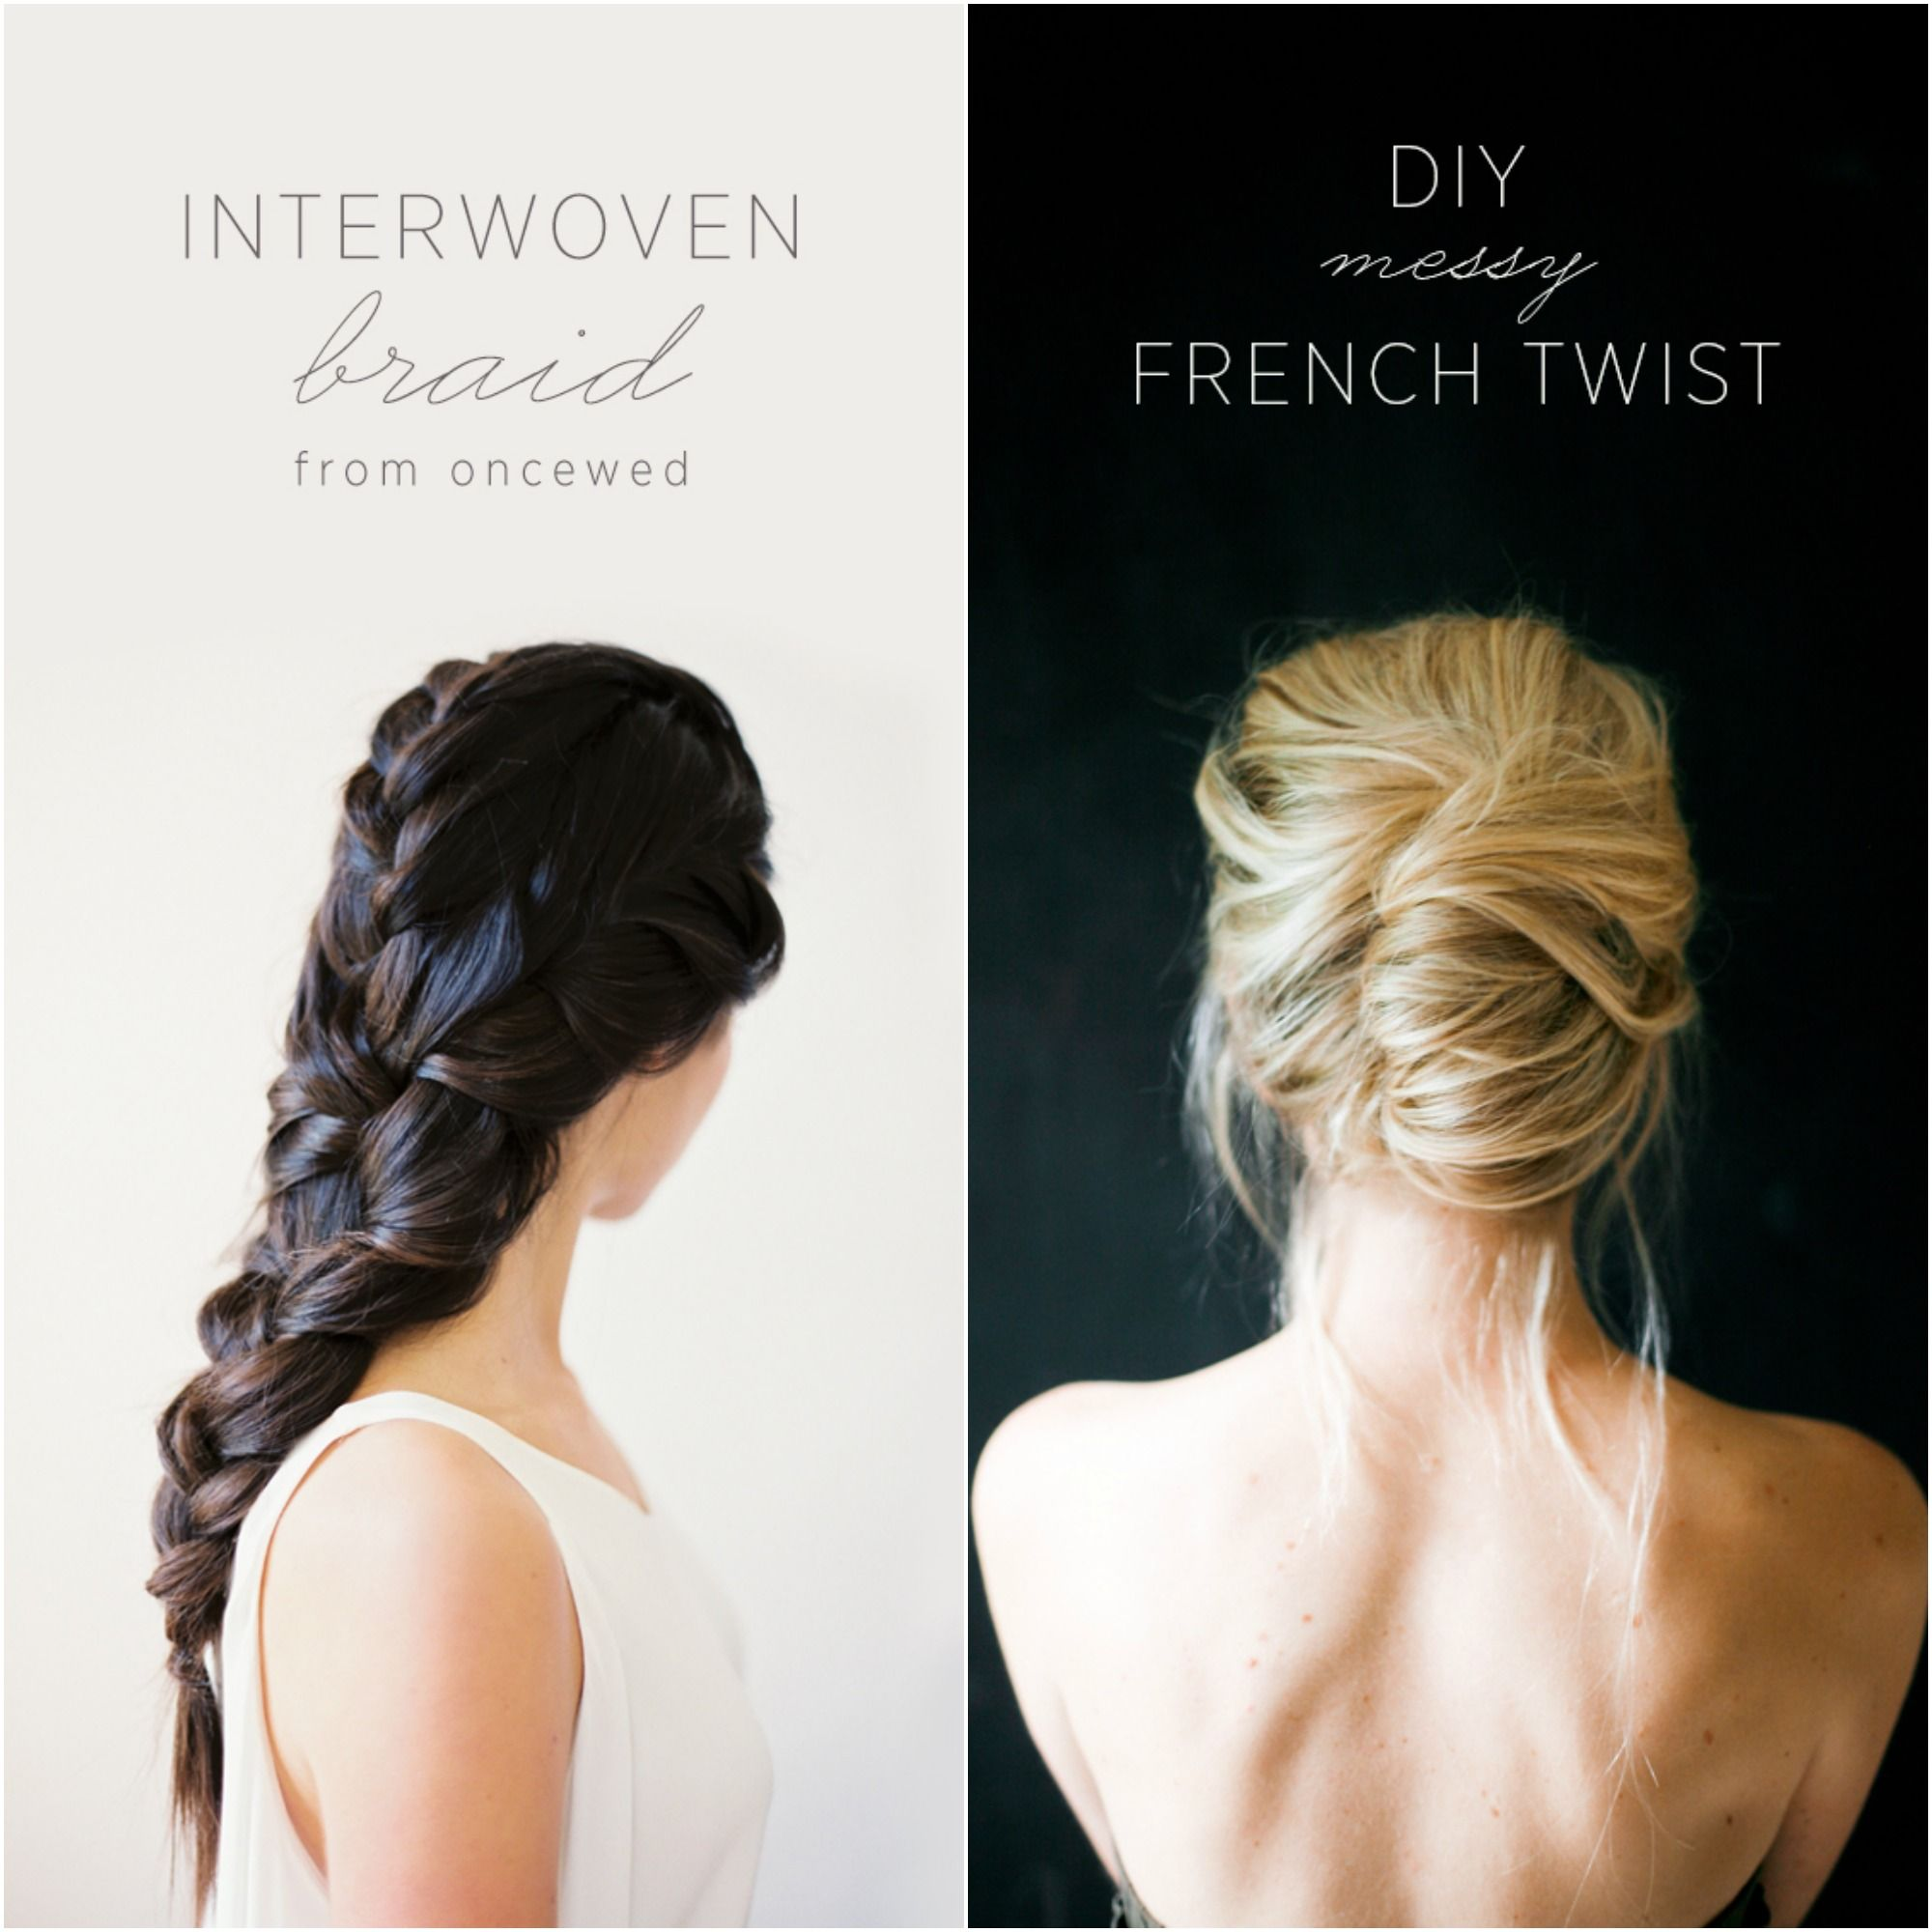 diy wedding hairstyle ideas 3 2 000—2 000 Pixel